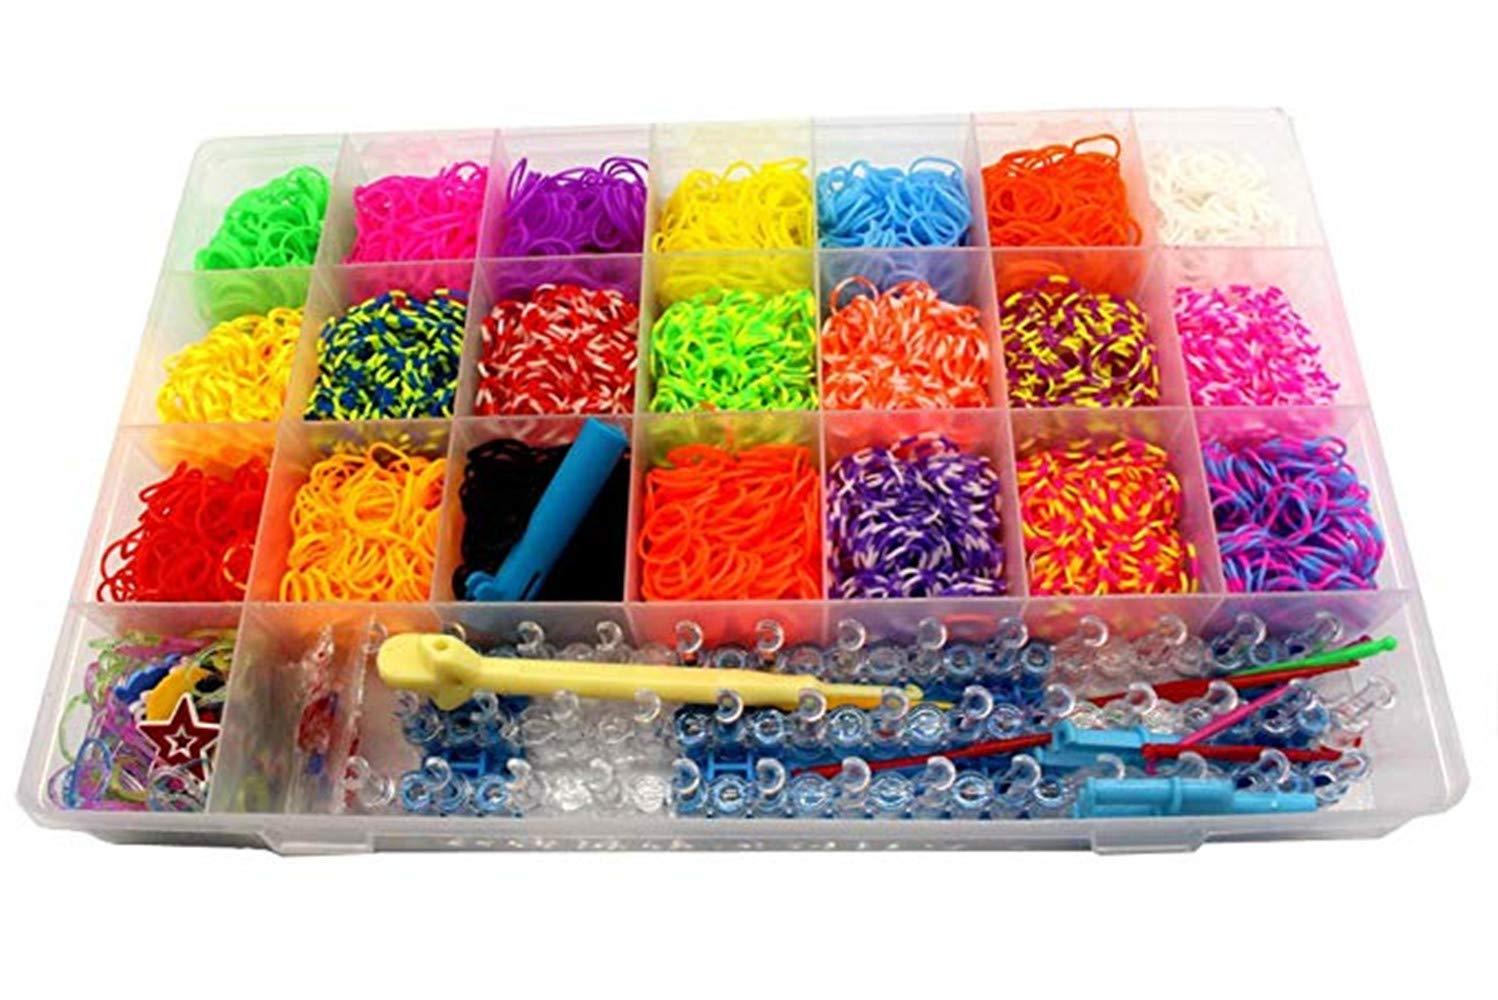 Rubber Bands for Loom 4479+ Rubber Bands Set,4400 Rubber Band(22 Colors),1 Big Hook,6 Small Hook,20 Pendants,1 Weaver,2 Y-Shape,1 Button Stickers(Random 1 Pack)